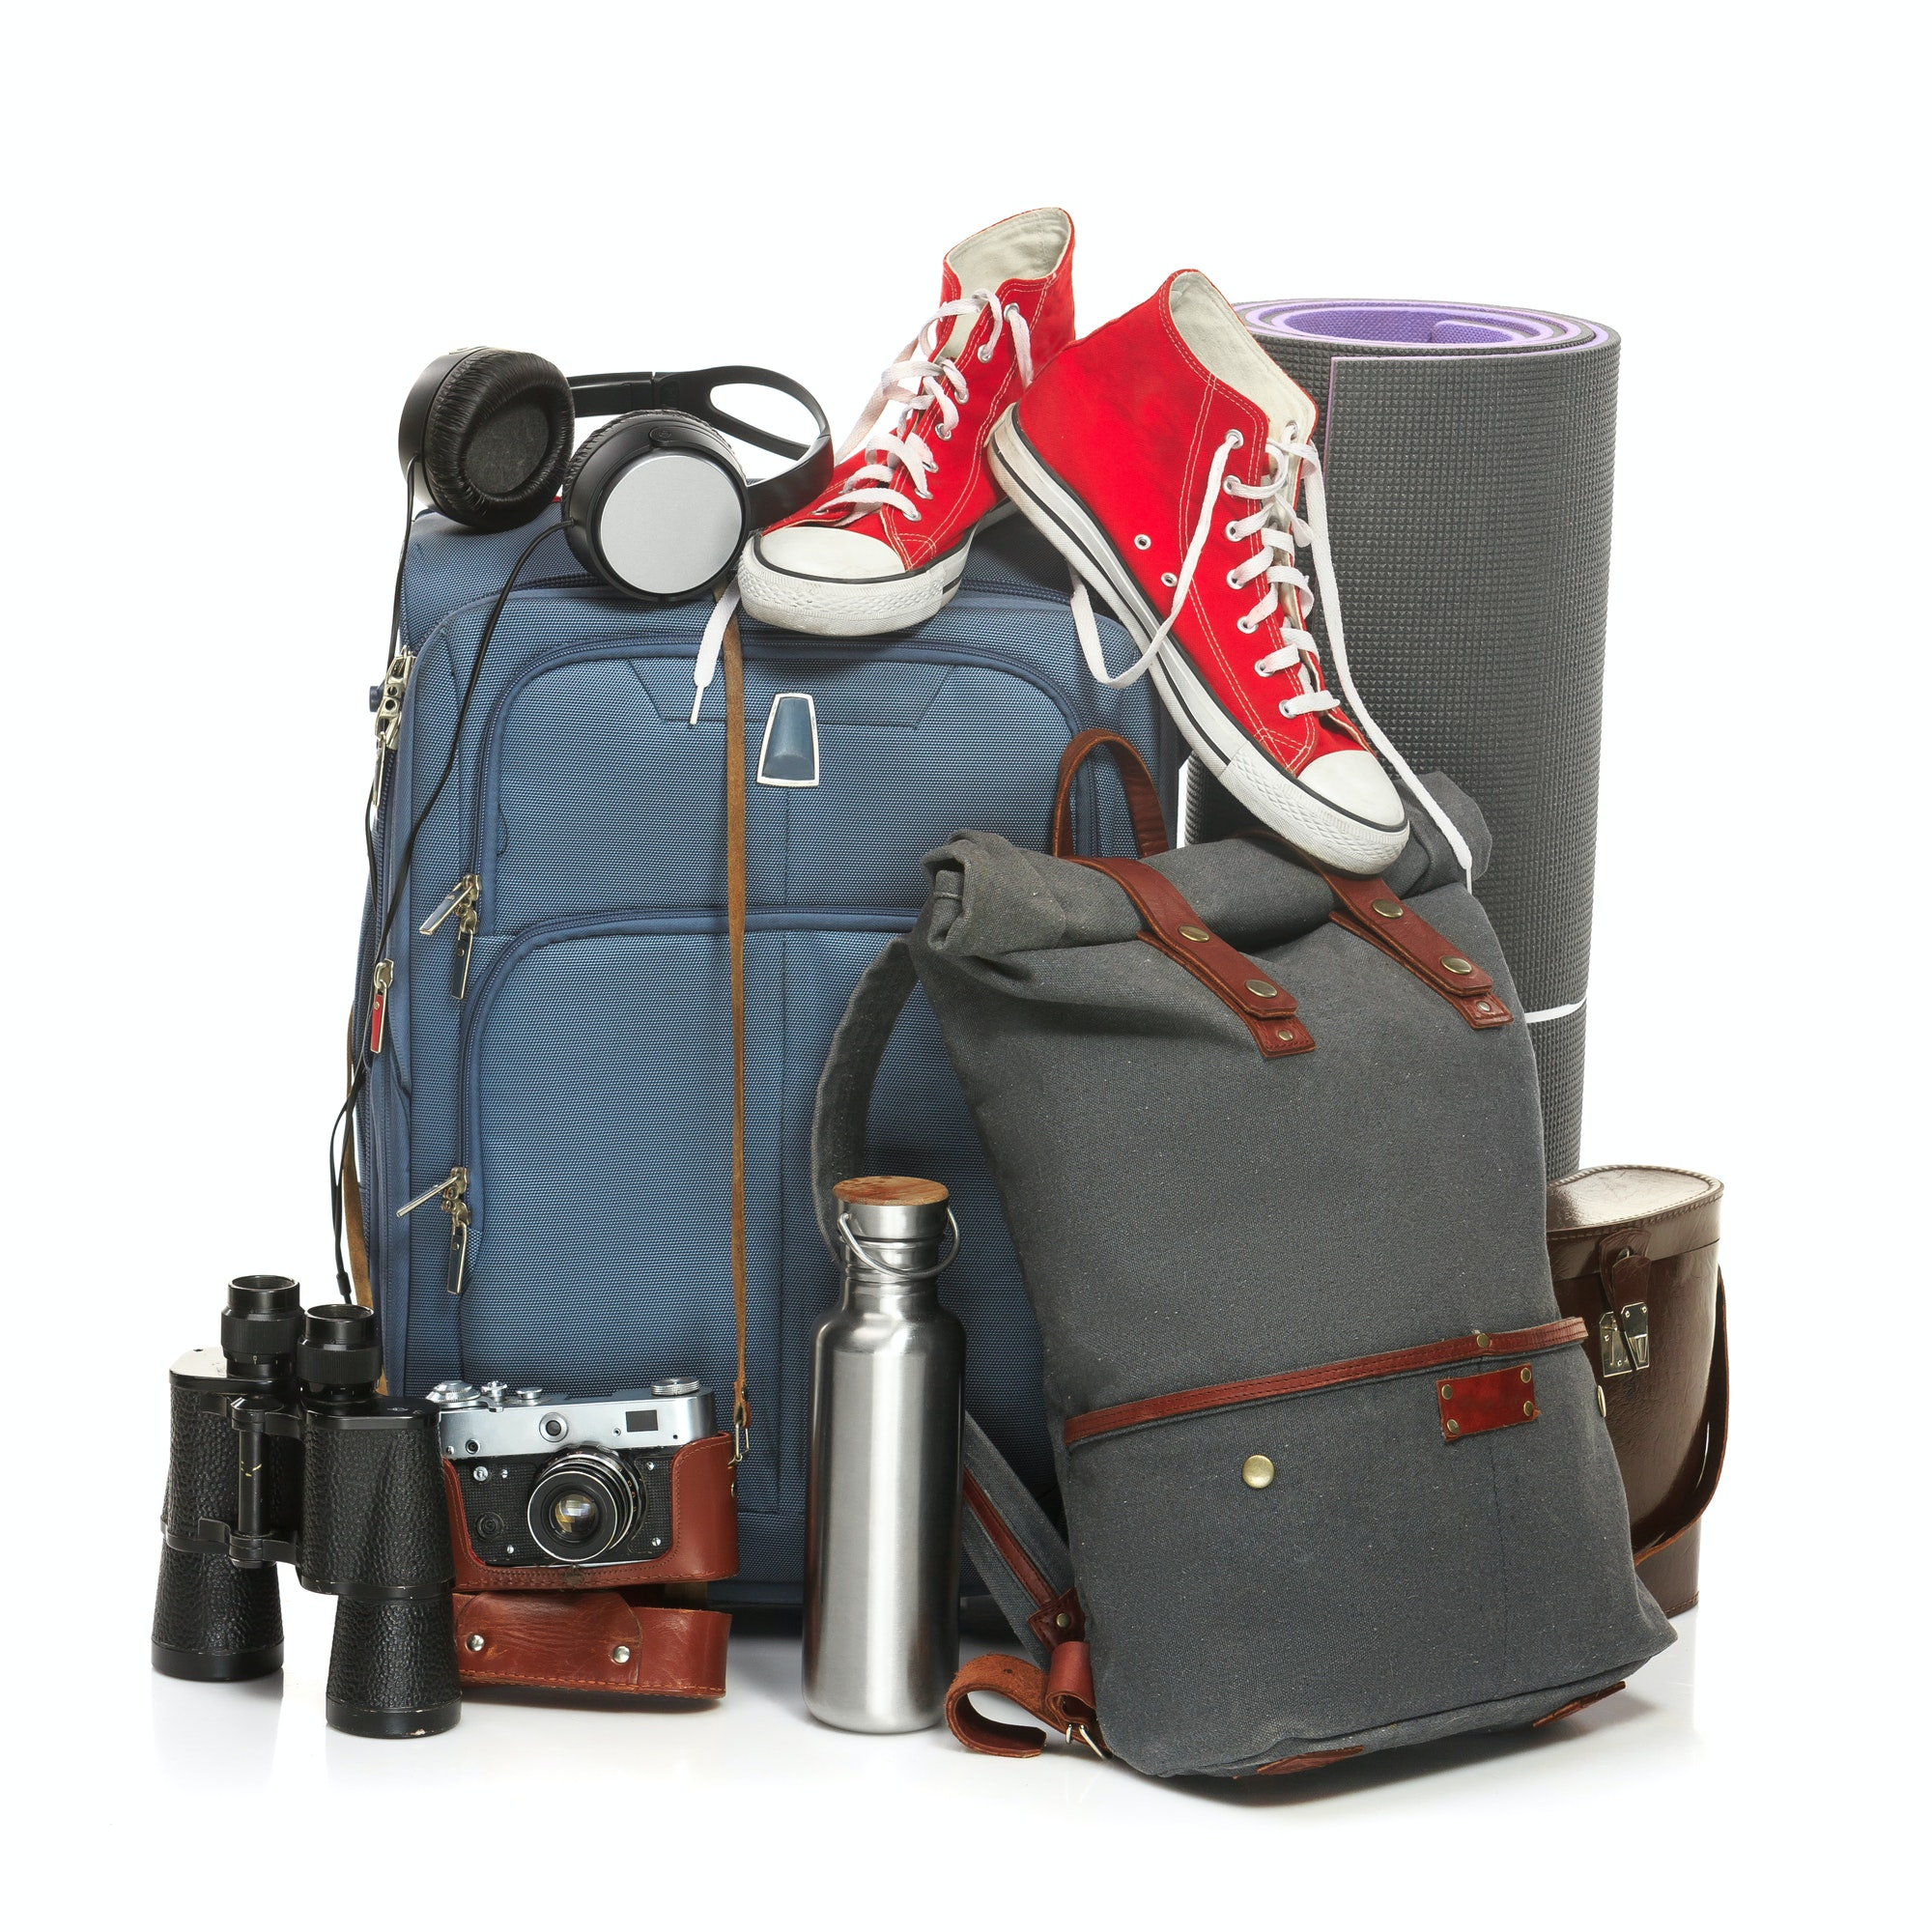 The suitcases, sneakers, retro camera, karrimat and binoculars on white background.